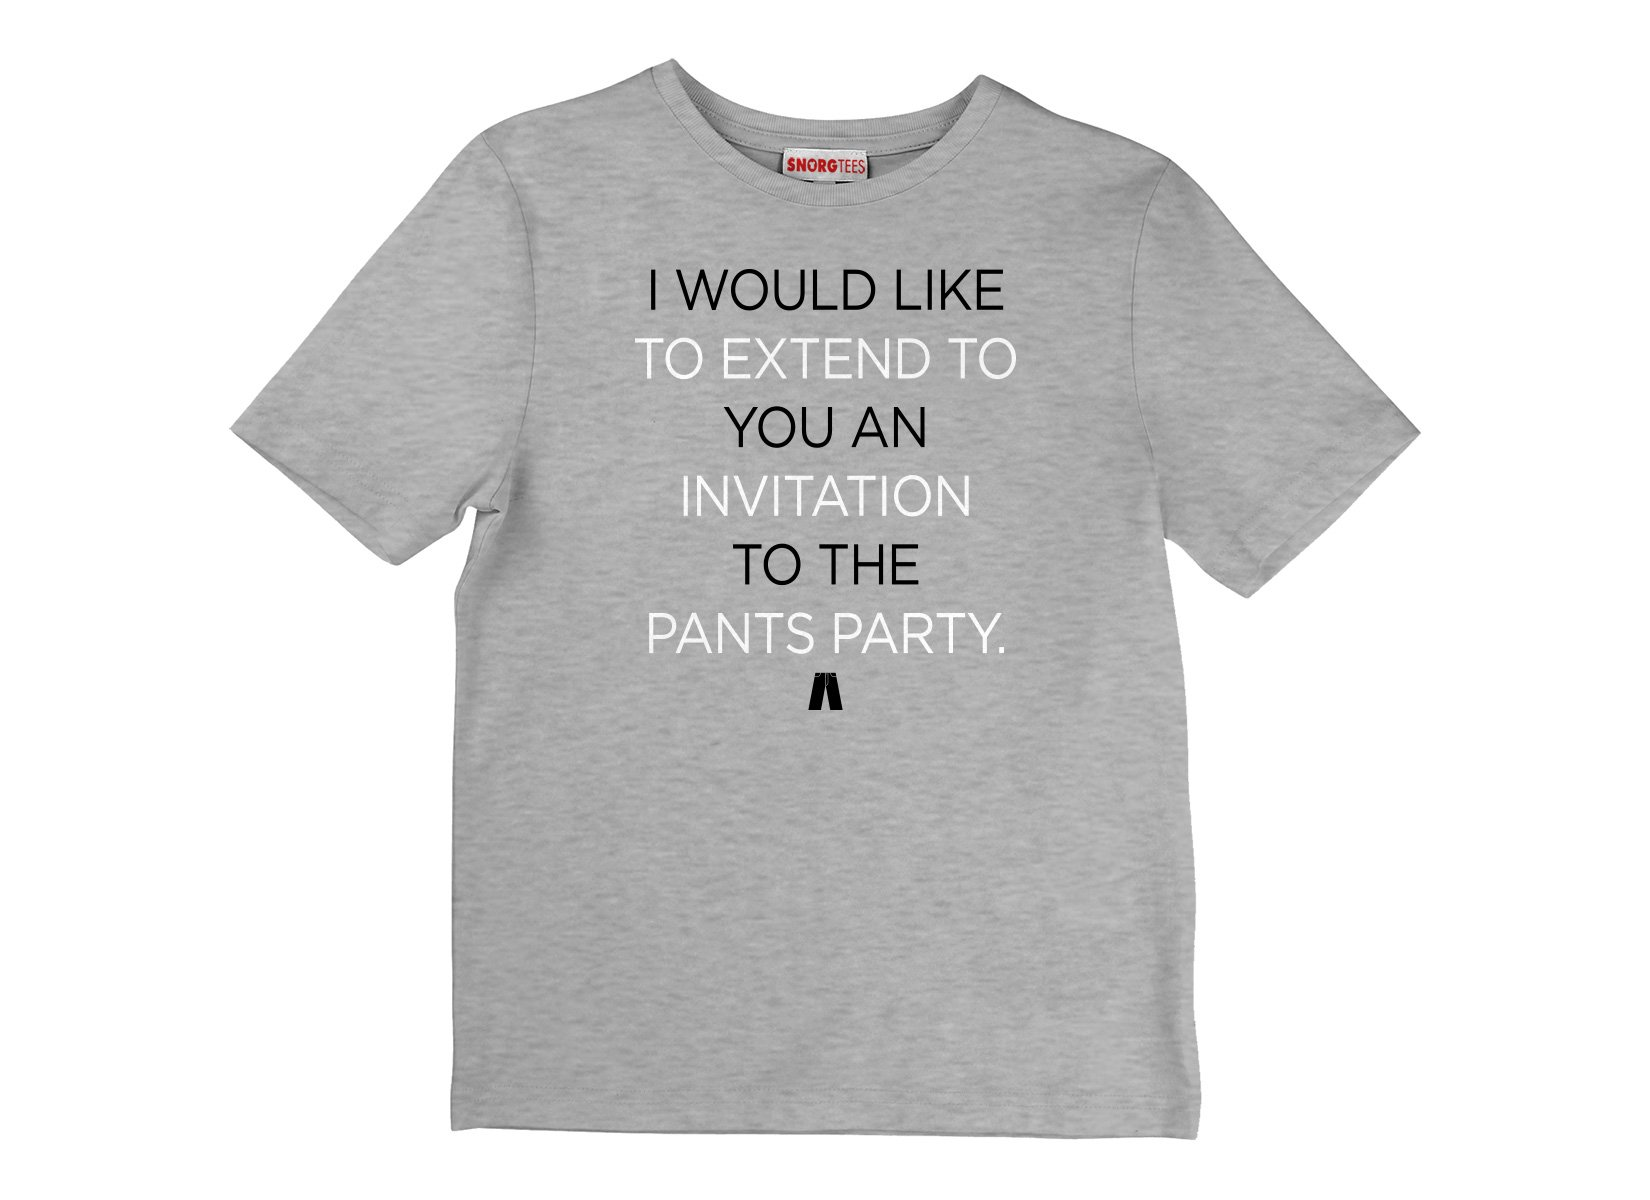 Invitation To The Pants Party on Kids T-Shirt